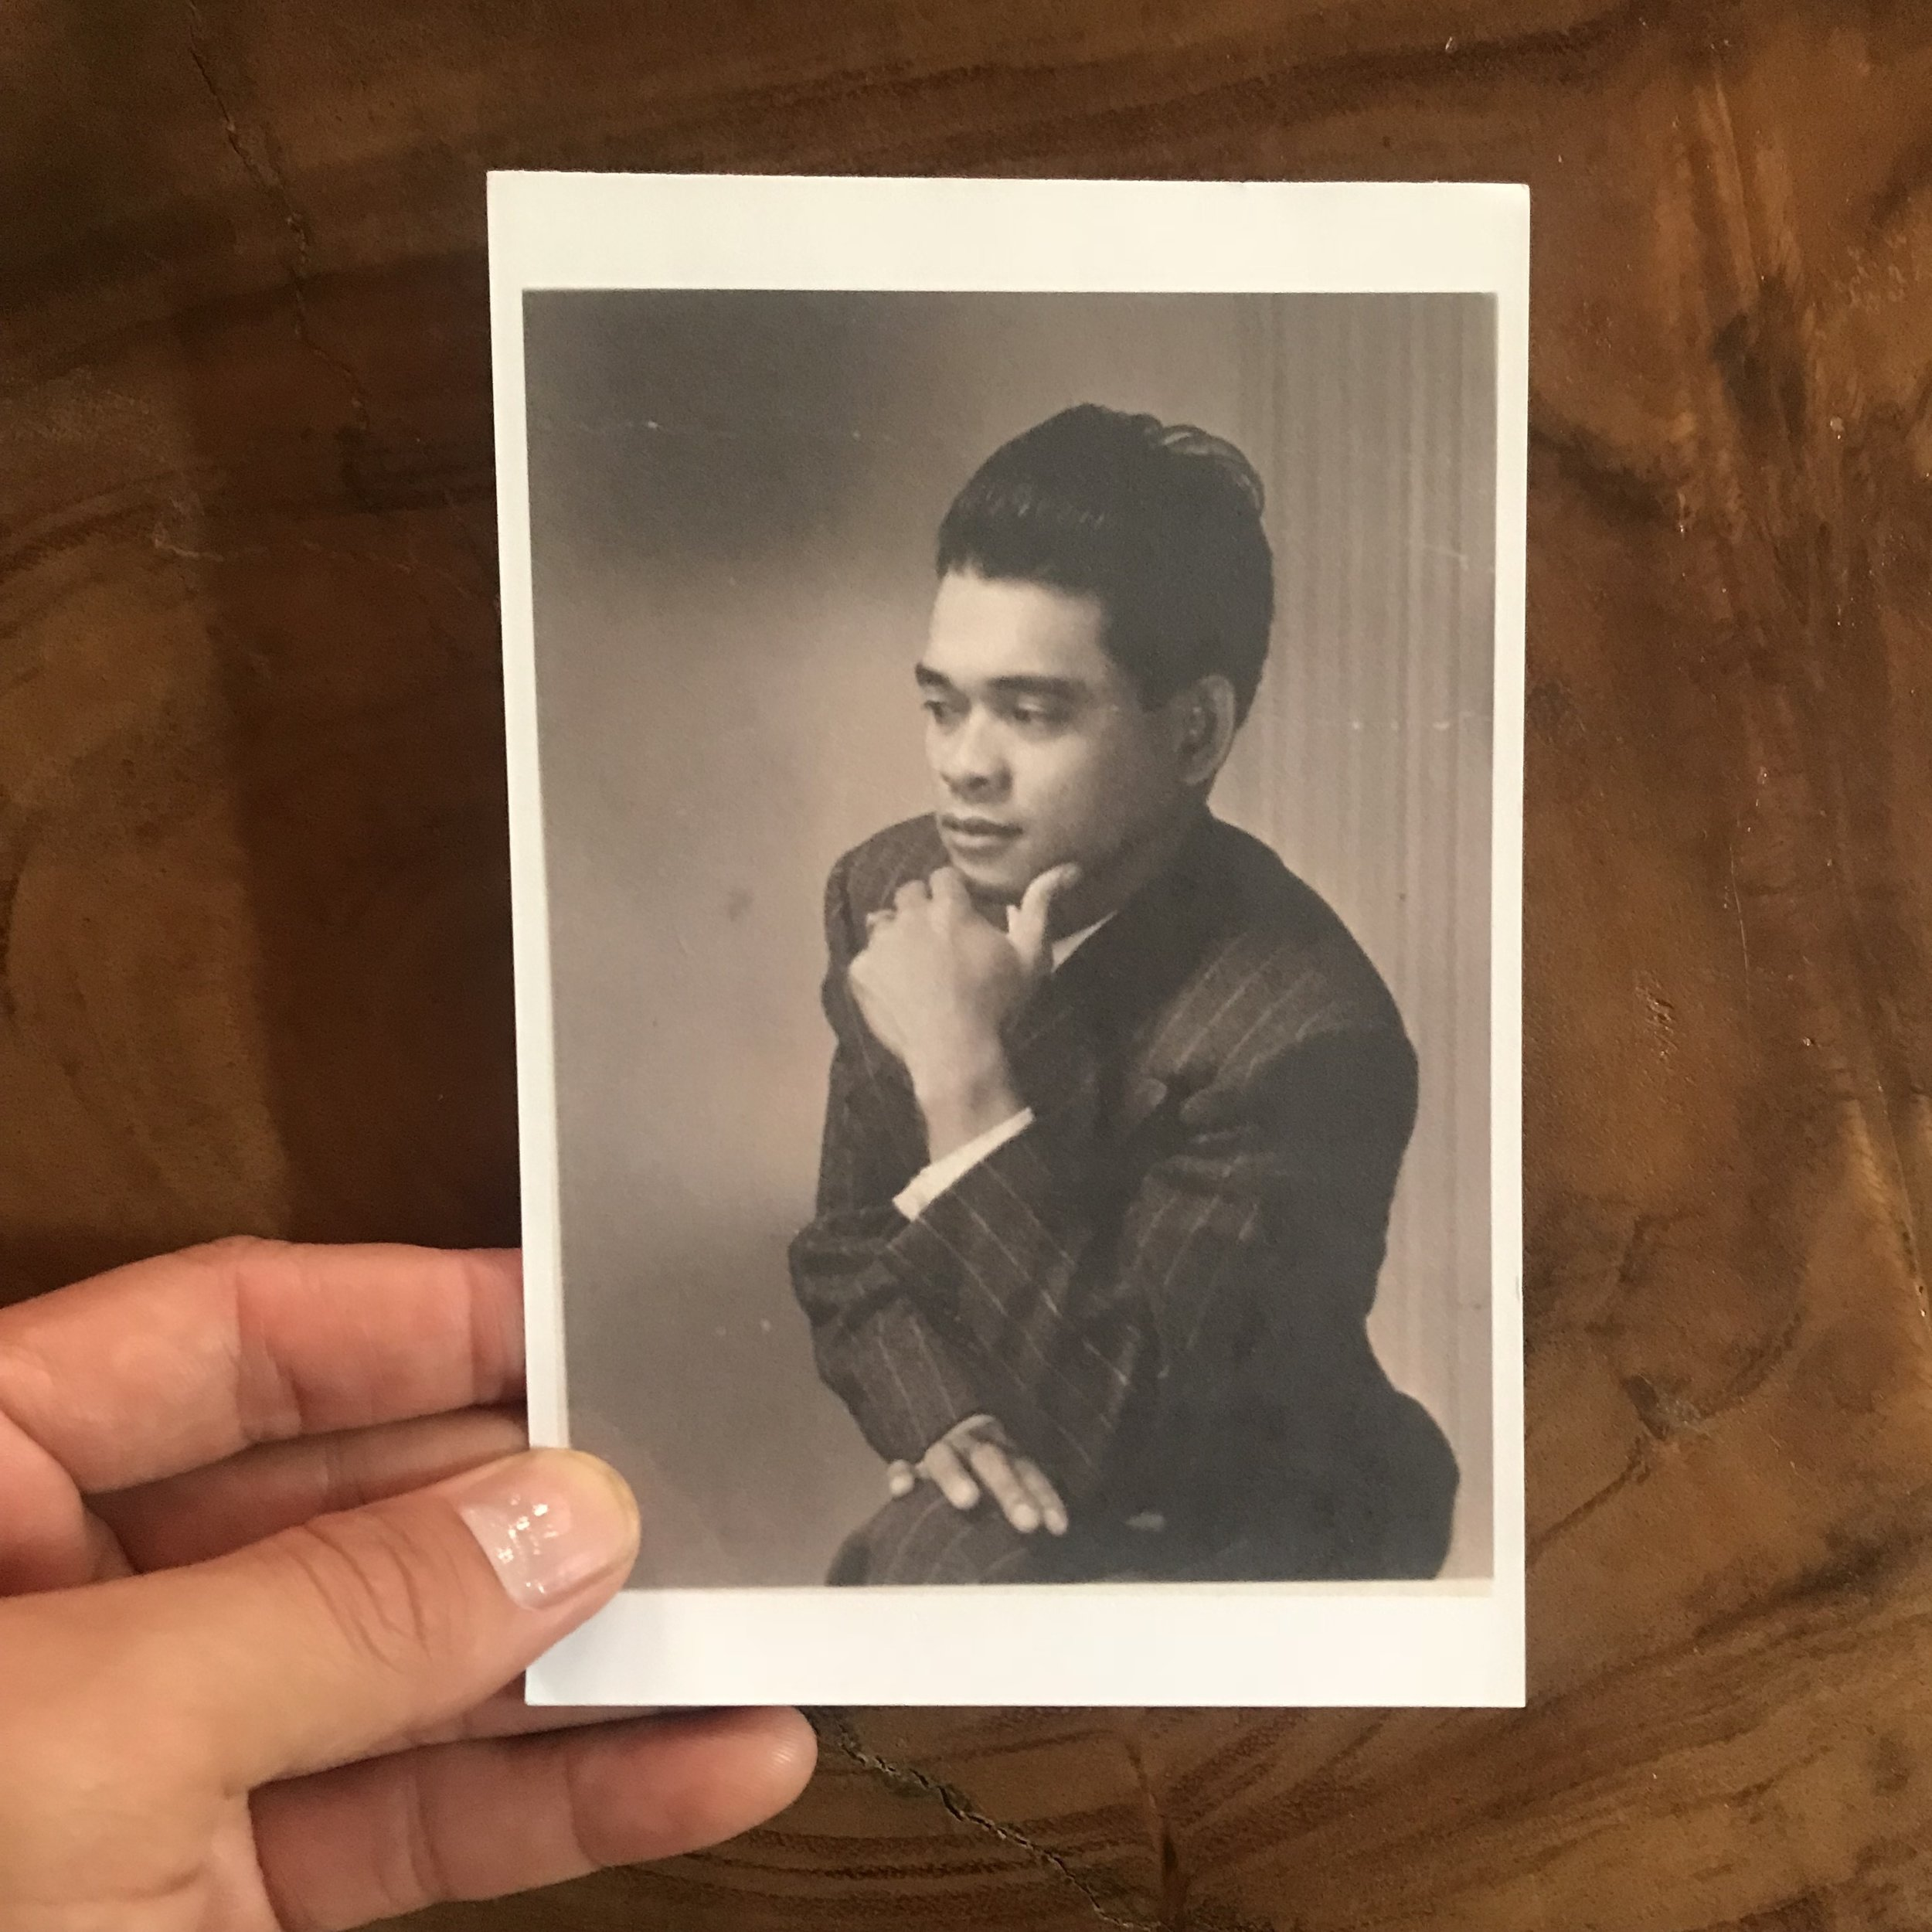 """Vintage photo of my father: Honorio Silva Carlon (1912-2008) circa 1932.  Filipinos have been a crucial part of America's cultural fabric, yet our stories are disregarded, minimized, and completely omitted from history books. I am using this month to announce that I am the recipient of the first L.A. Dance Project residency that supports a local artist to produce a new work. The residency is called MAKING:LA, and it starts this month and I work intermittently for 4 months creating a work on my own company CARLON, with a showcase in February (and a karaoke fundraiser in Dec, stay tuned, it's gon' be lit.) The reason why I waited this month to announce it publicly is because the work is about my quest to understand what it is to be Filipino and Filipino-American... or what it means to be Filipinx, really.  I AM FILIPINO-AMERICAN.  The work I am developing is a dance-theatre work that focuses on Filipino history: from my father's migration to America in the 1930s to being a strawberry picker (""""stealing jobs and women from white Americans"""") to colonization by Spain AND America AND how the Spanish-American War led to the Philippine-American War -- thinking about resistance and solidarity, and thinking about mestizo-privilege and being light-skinned, and thinking about what indigenous peoples are and how that might be a part of my forgotten ancestry, and thinking about thinking about... I've been thinking about this work since I started dancing when I was 18, about 14 years ago... I'll be using this account to document my quest through photos of my Filipino American story, integrating untold histories and uncovering a muddled identity of a second generation brown boy."""